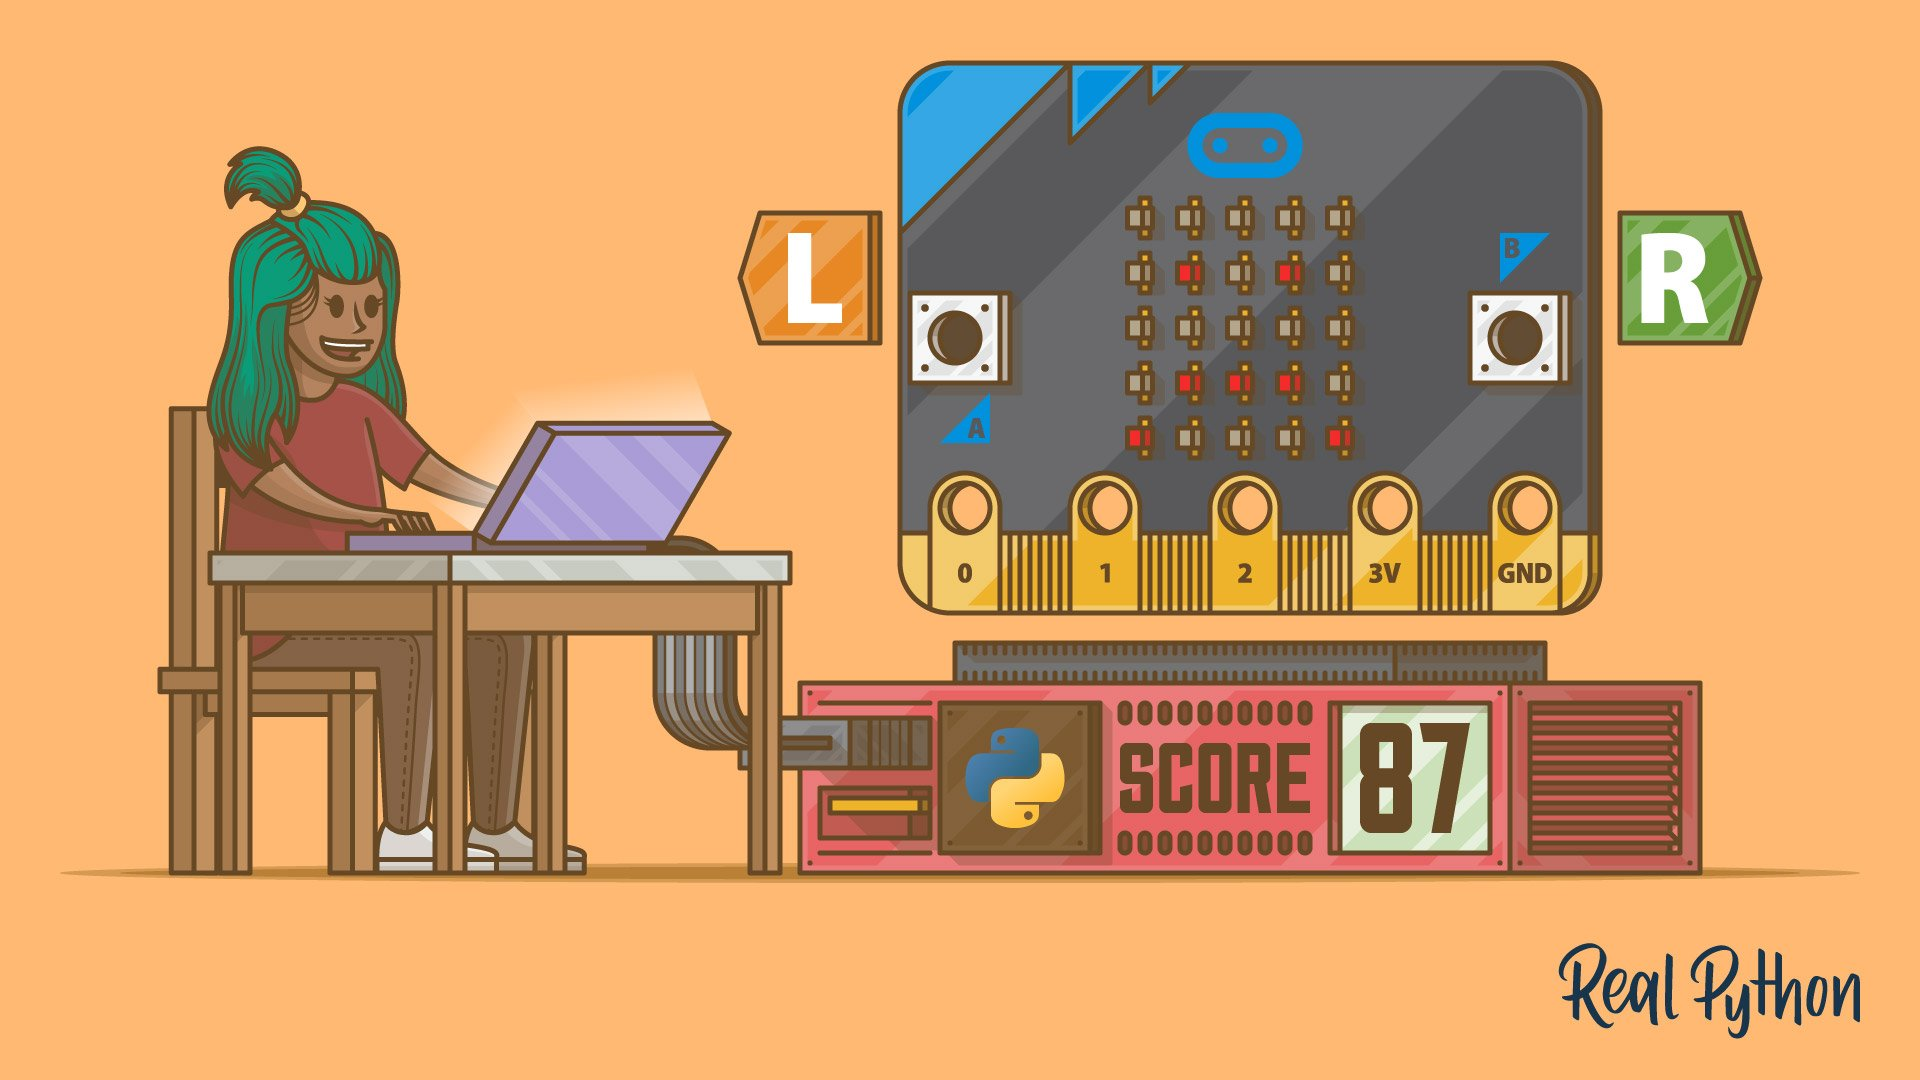 Embedded Python: Build a Game on the BBC micro:bit